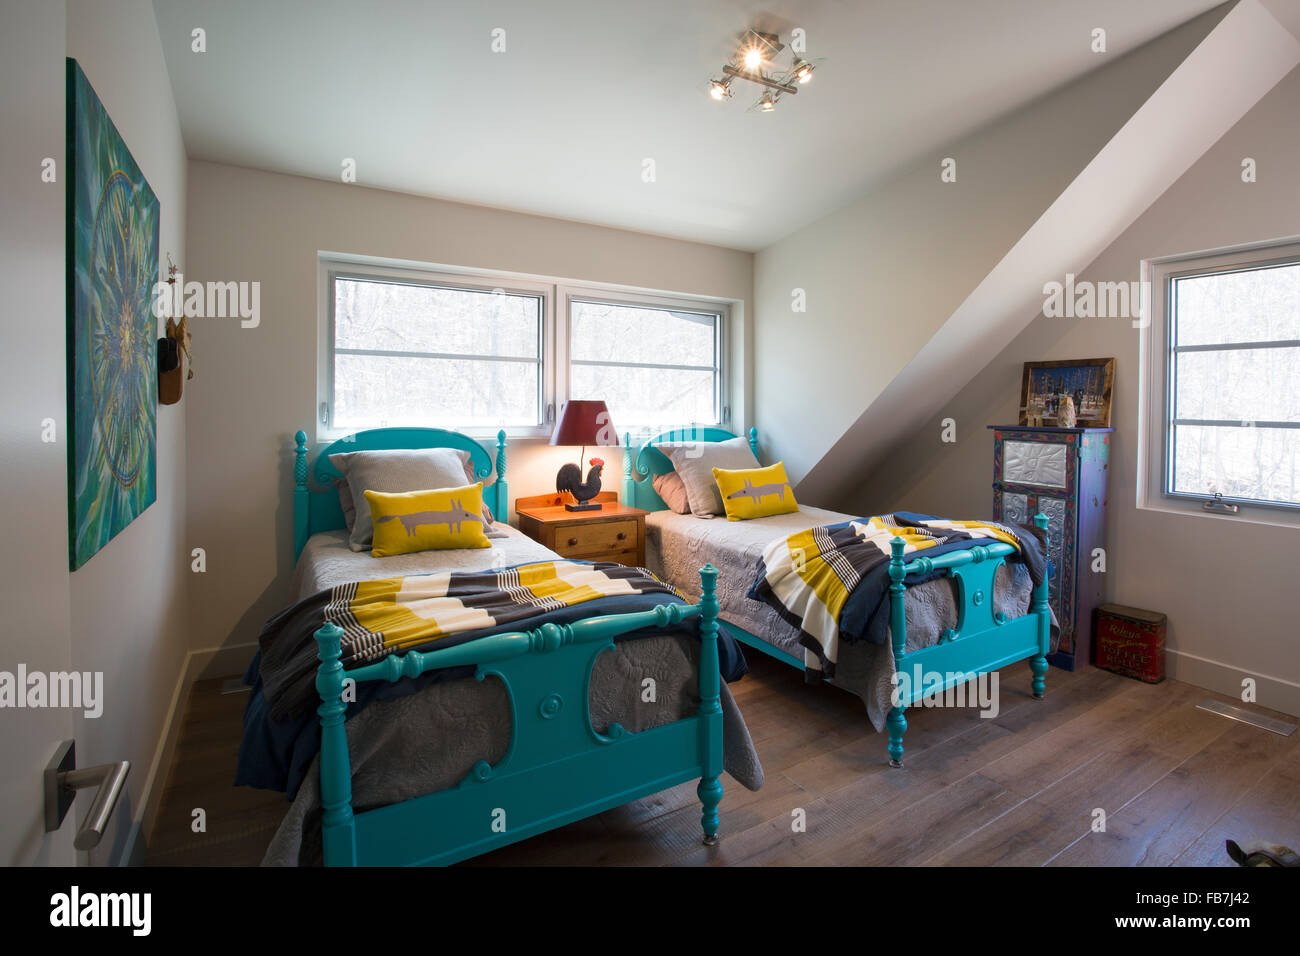 bedroom with two beds - Stock Image